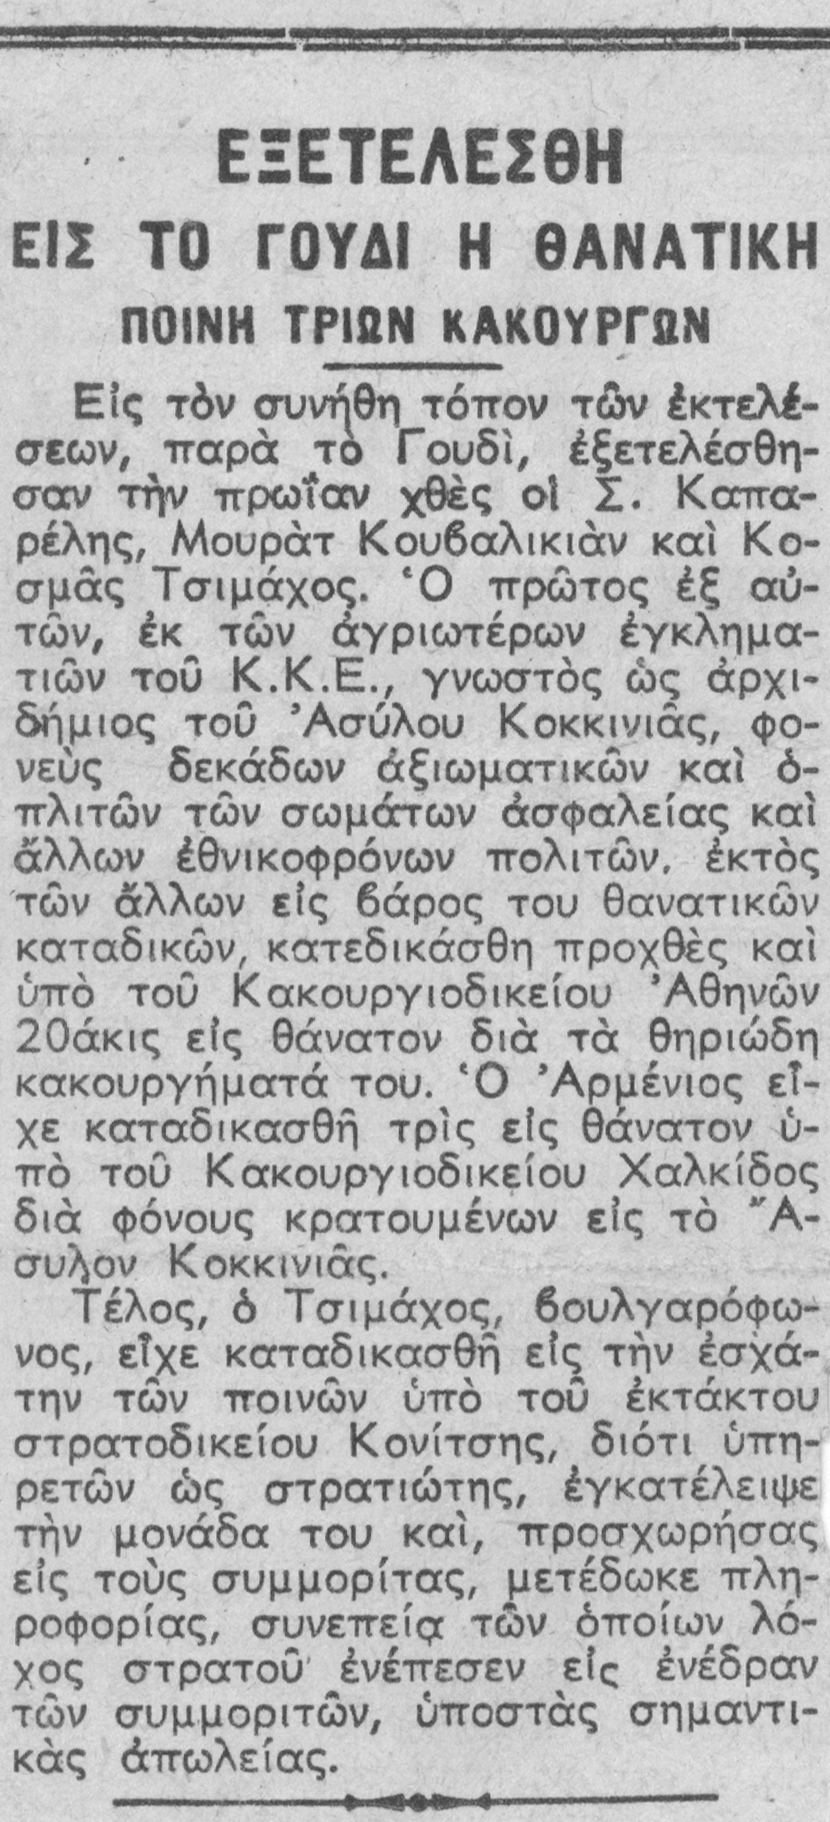 Kathimerini Article